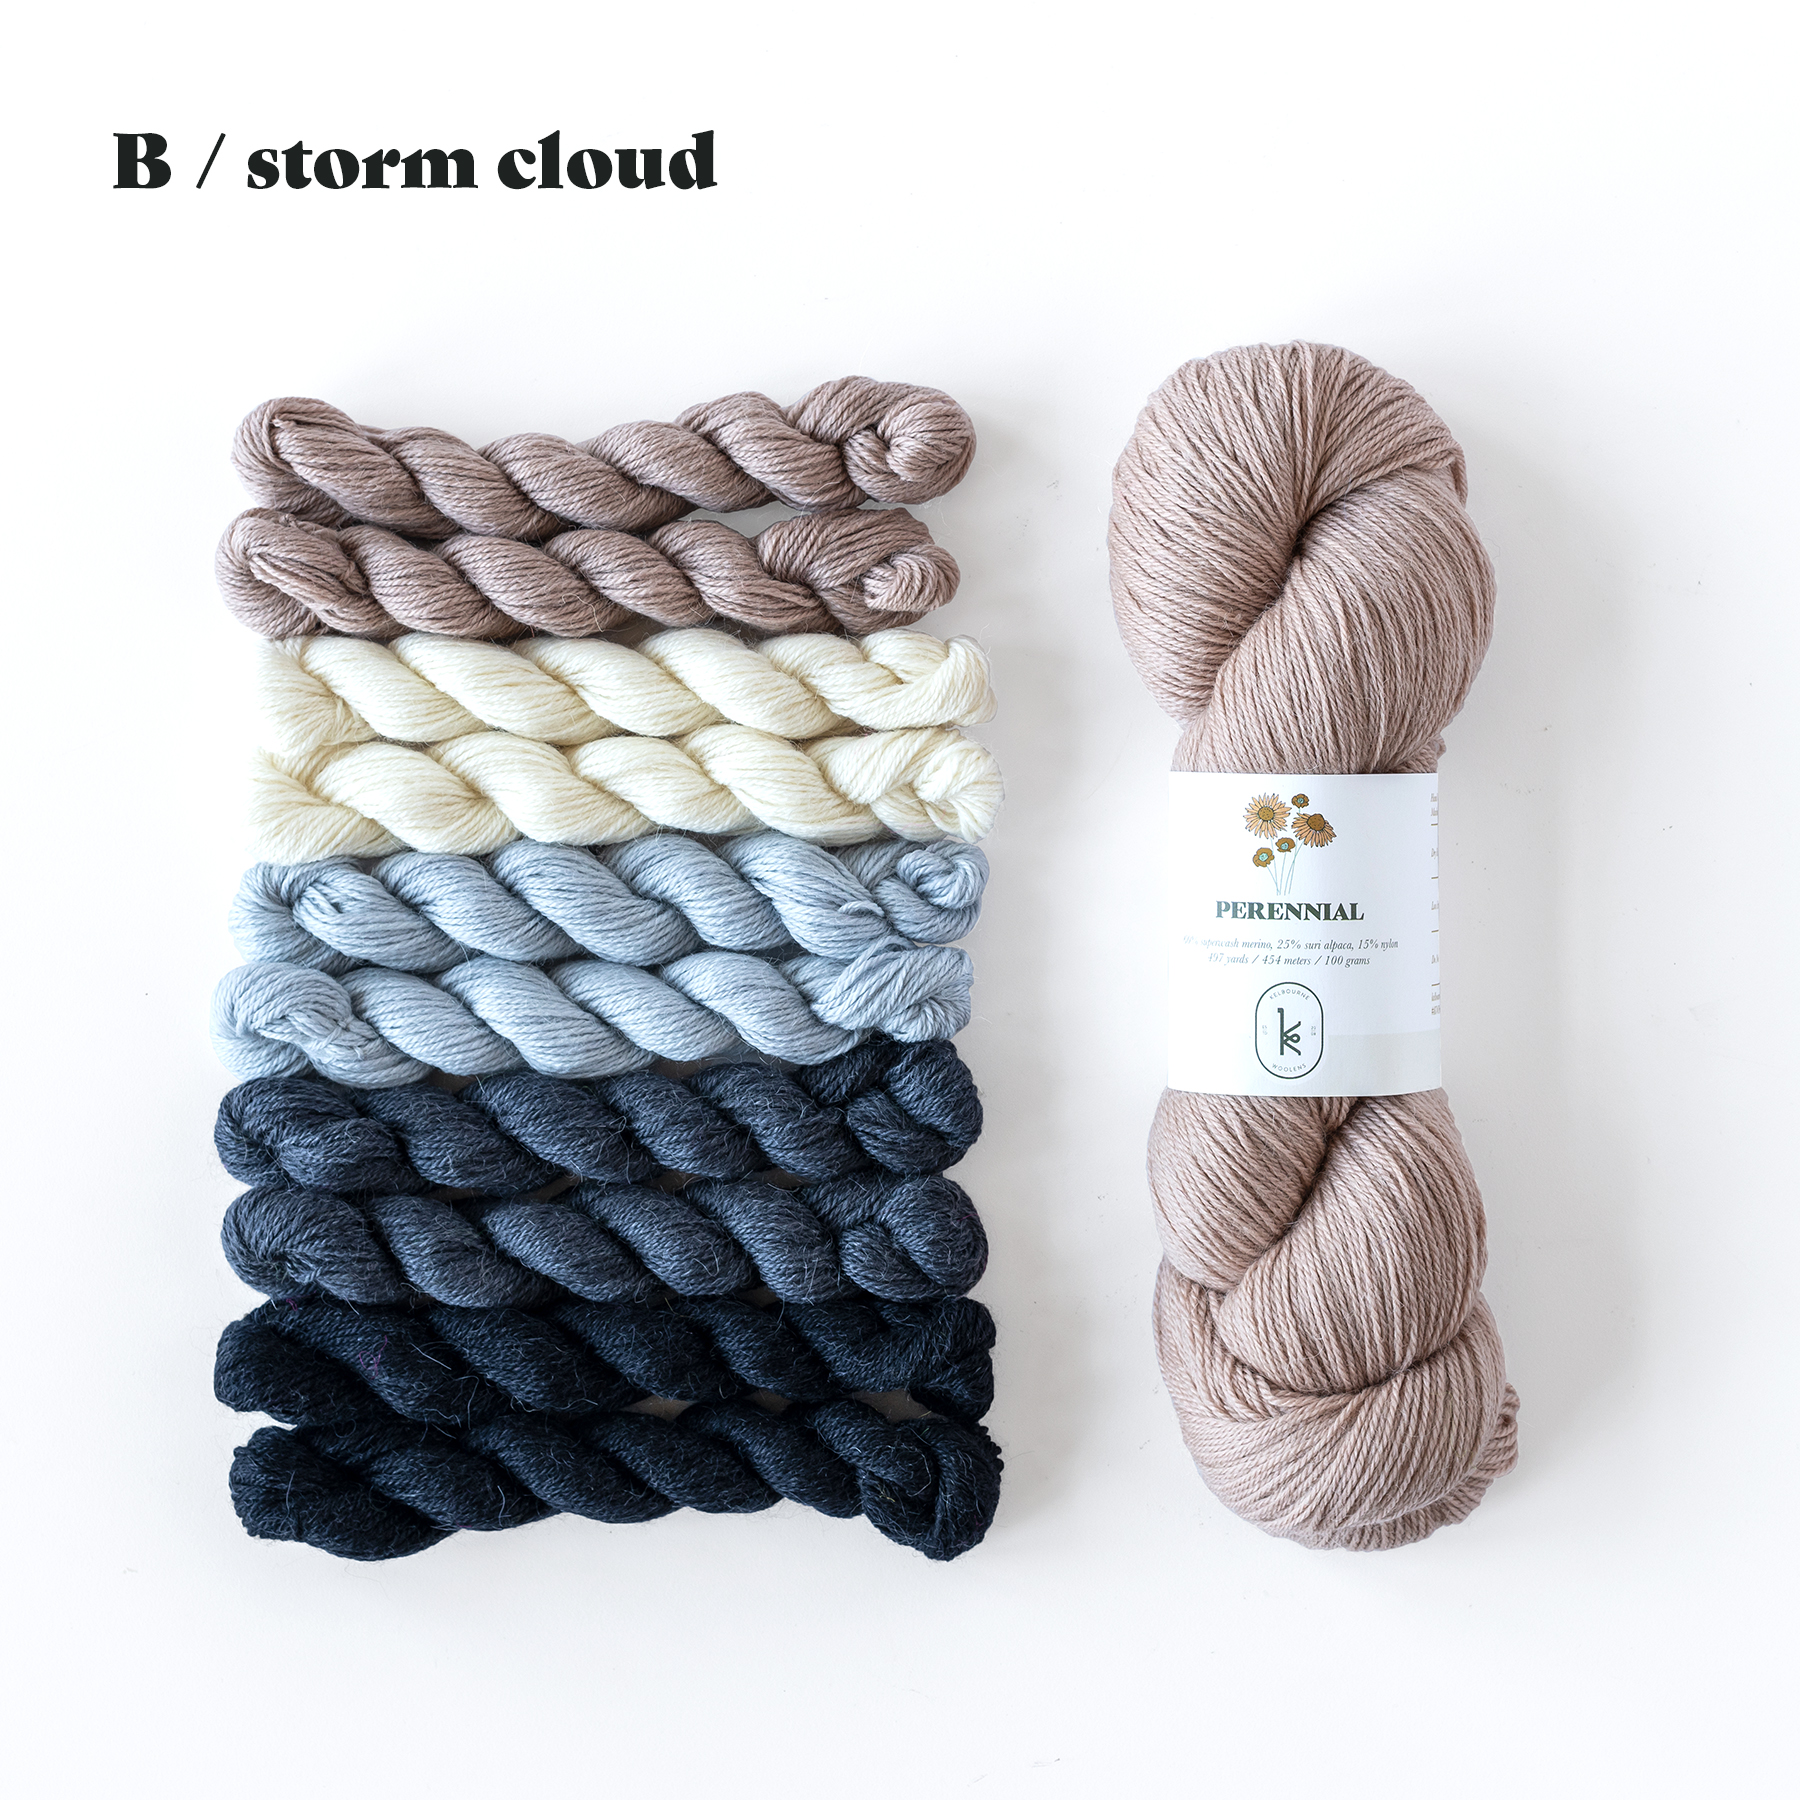 Bow in the Sky Kit b storm cloud.jpg